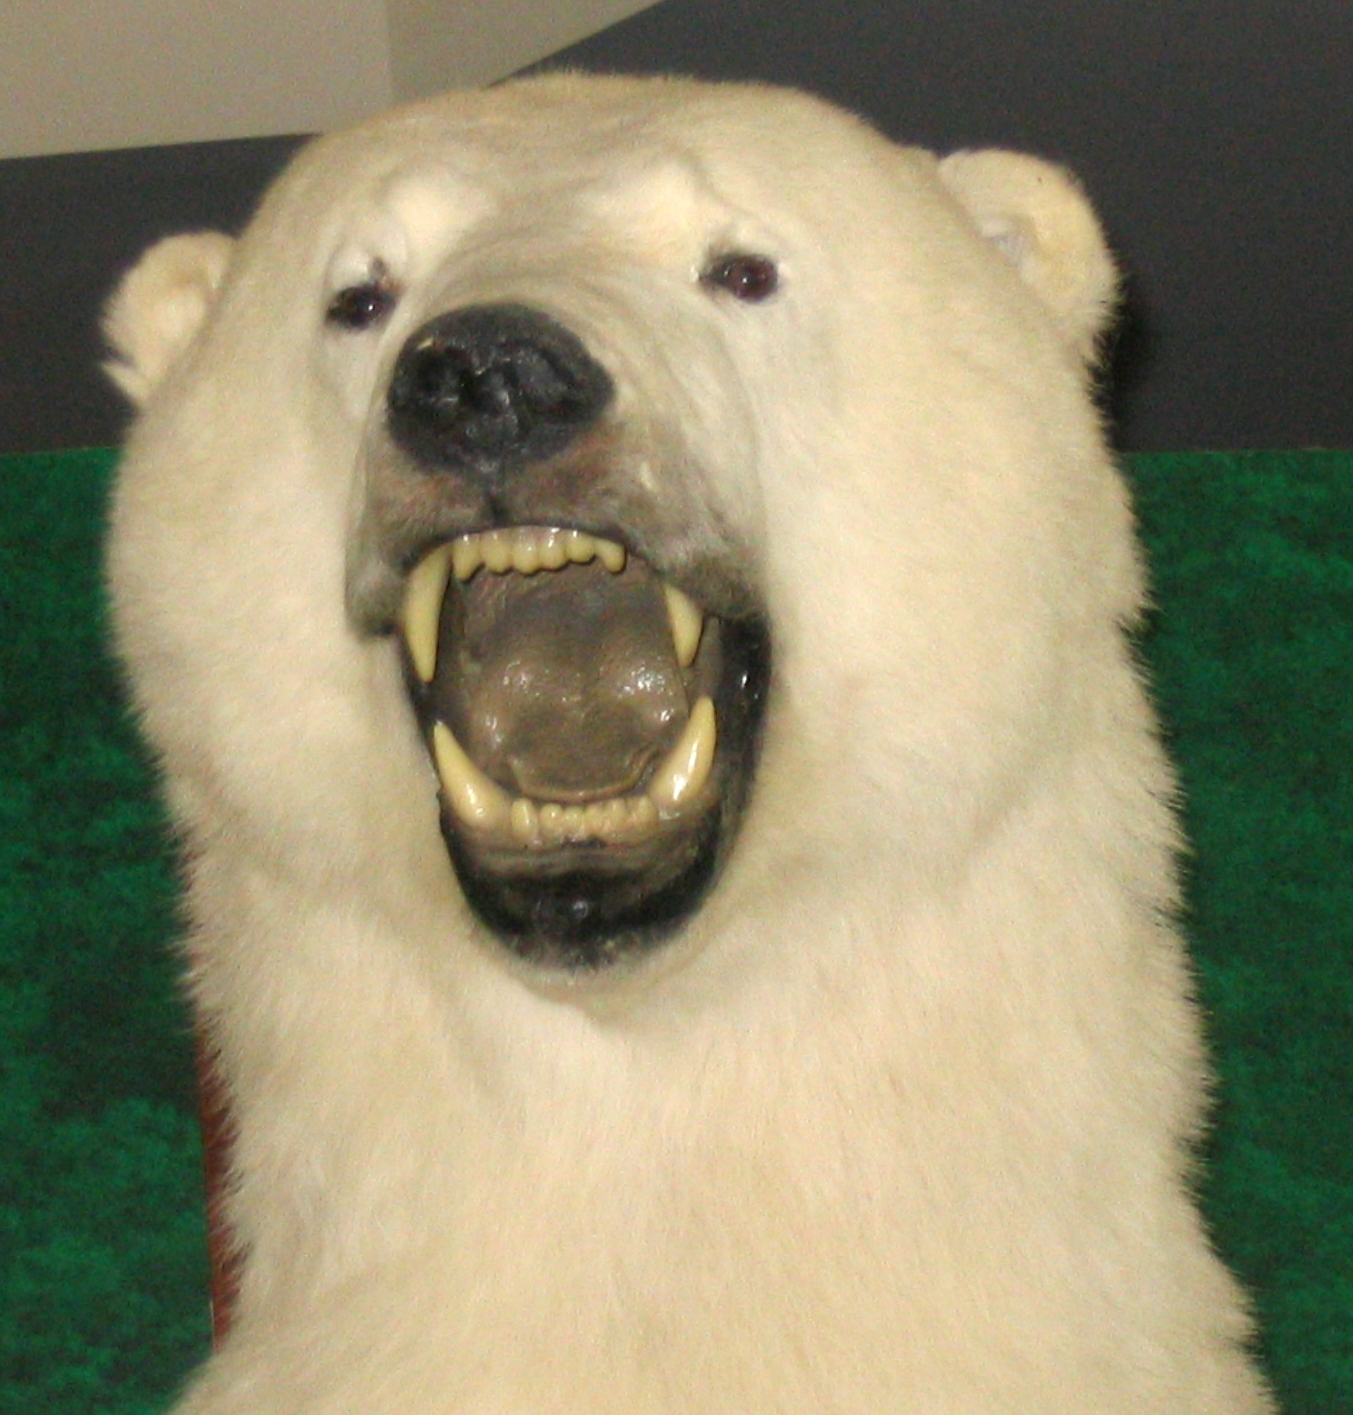 http://upload.wikimedia.org/wikipedia/commons/9/95/Taxidermied_polar_bear_head.jpg